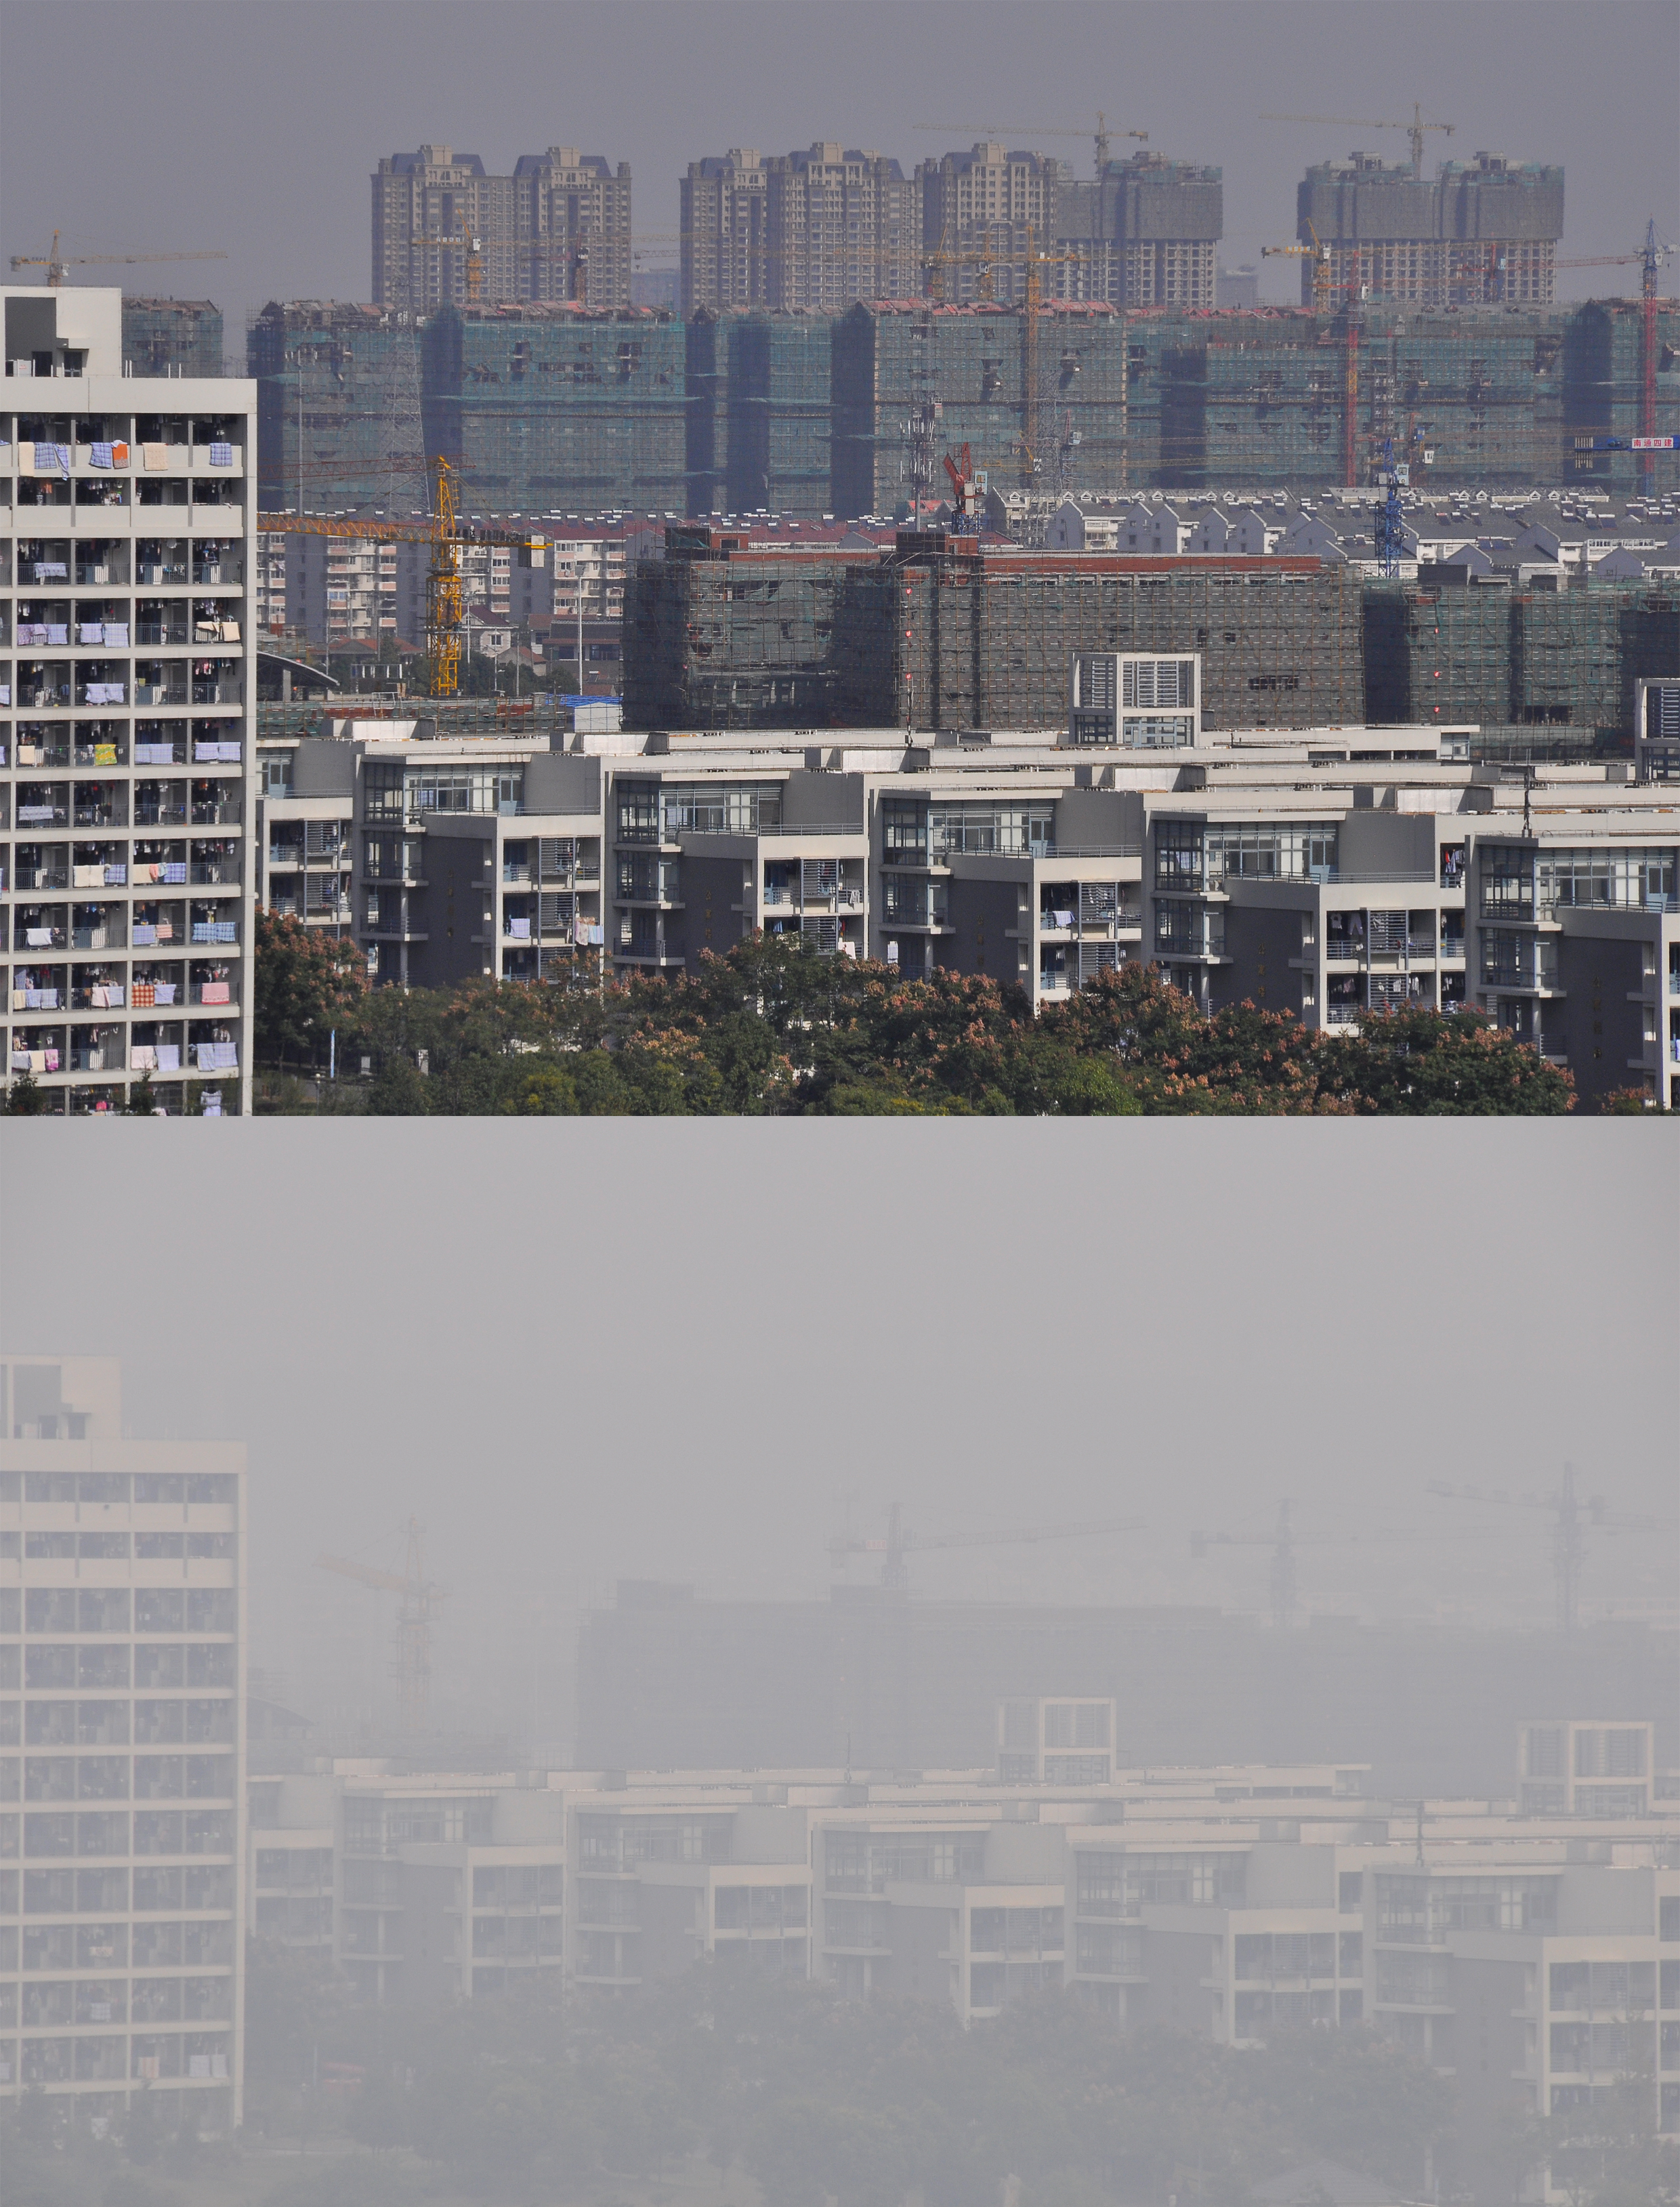 pollution nantong combo 3.jpg